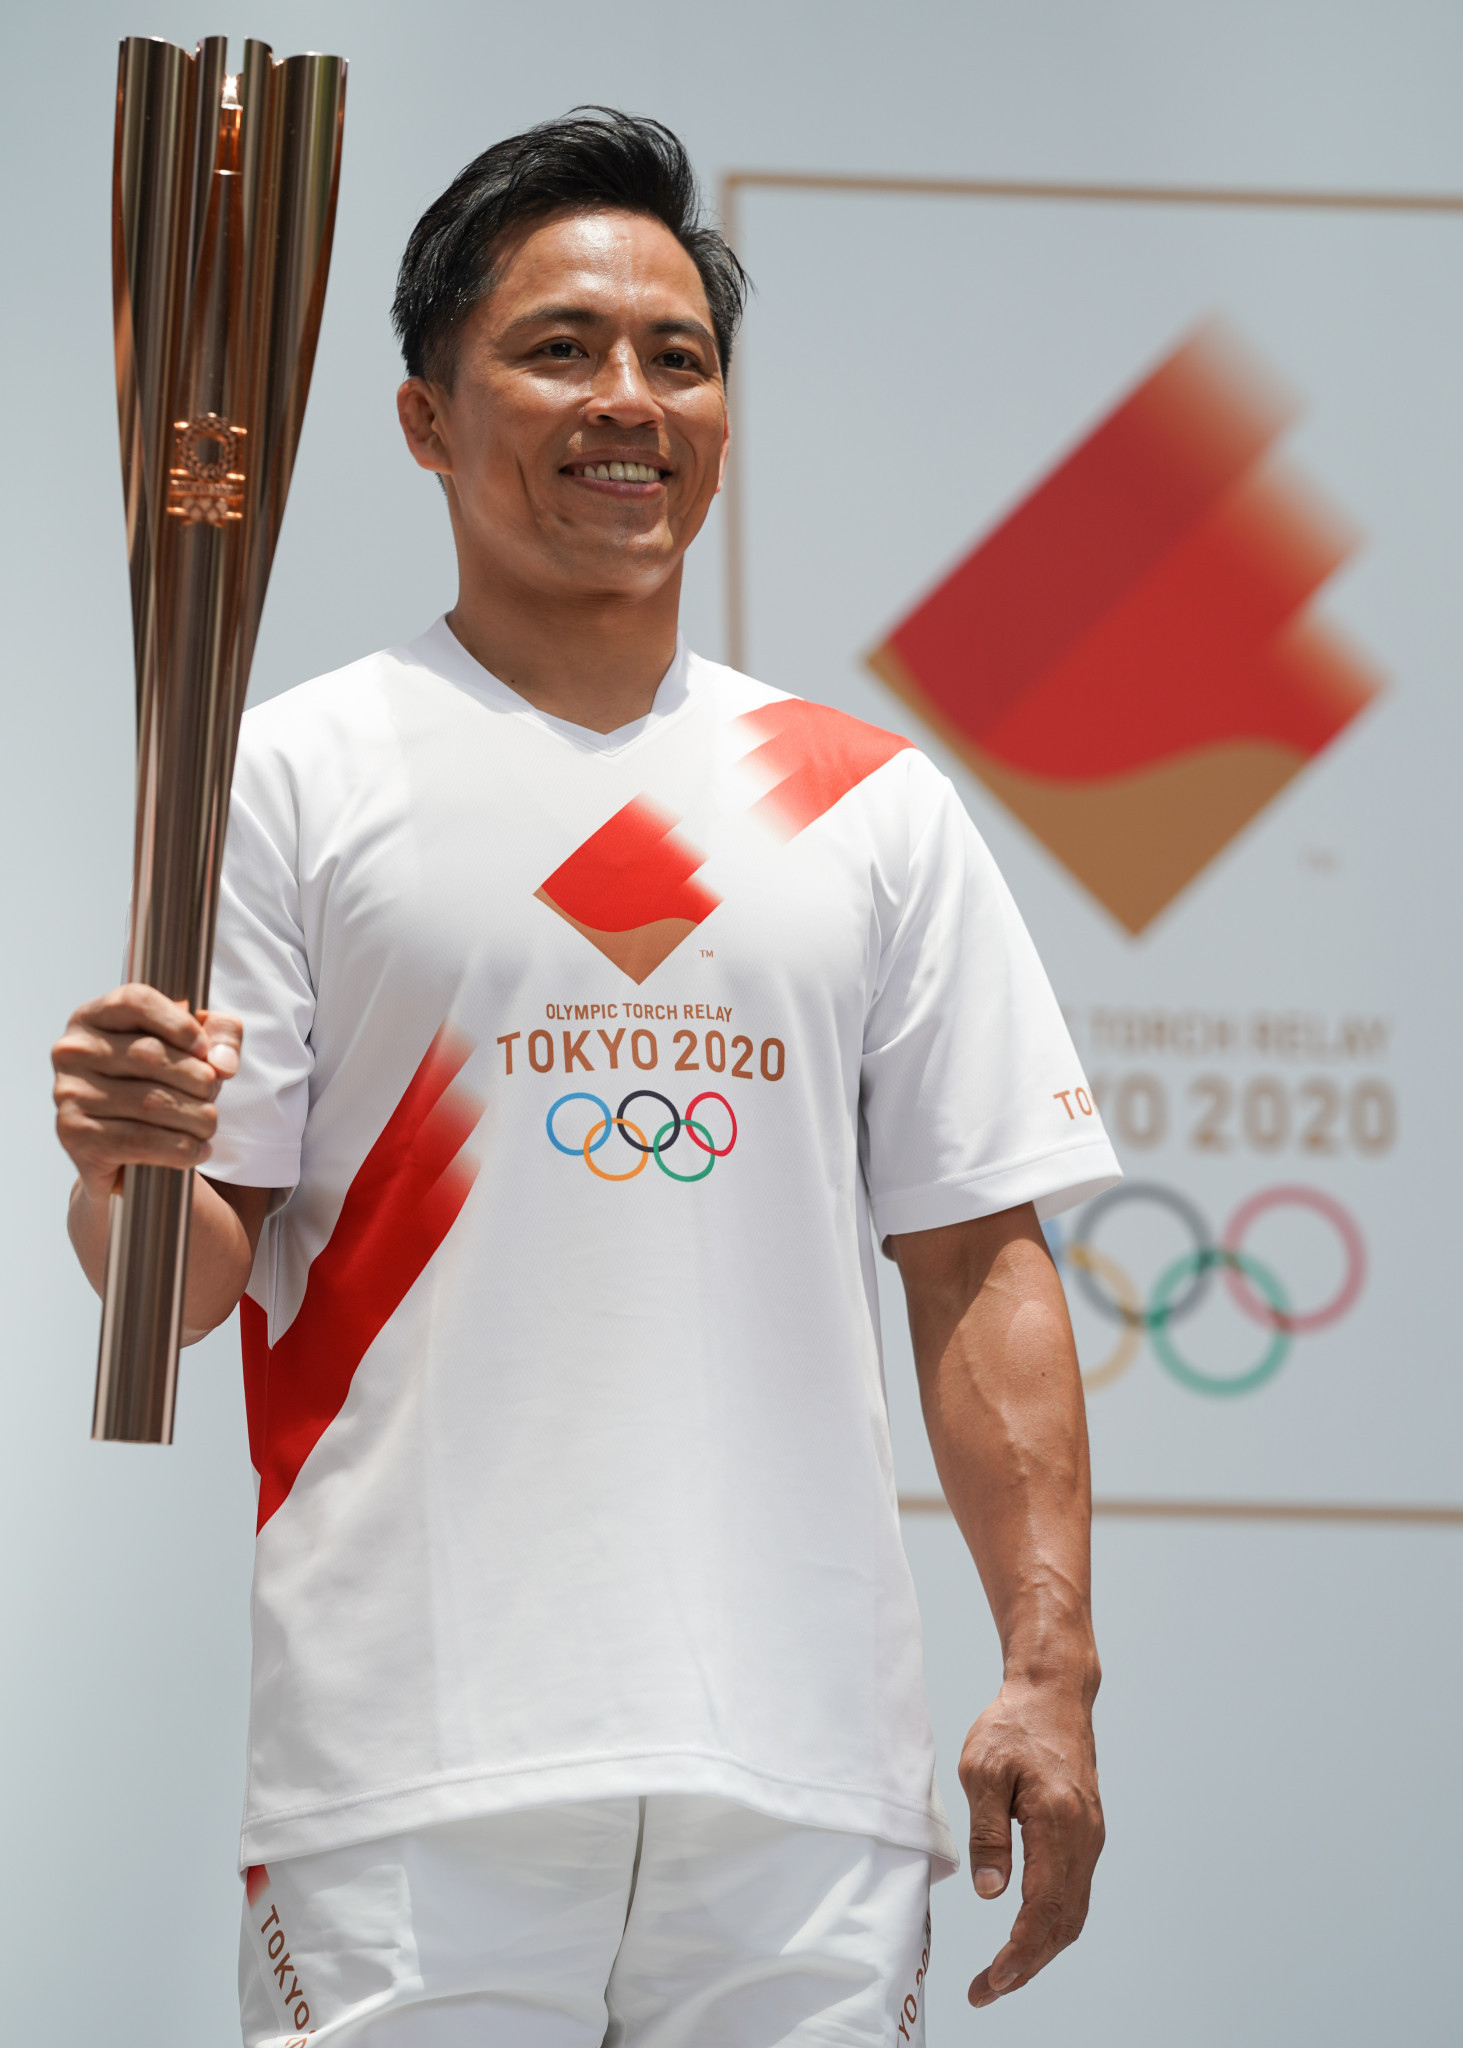 Japan's three-times Olympic judo champion Tadahiro Nomura is an ambassador for the Tokyo 2020 Torch Relay, and was also on the selection panel to choose the best design for next year's medals ©Getty Images